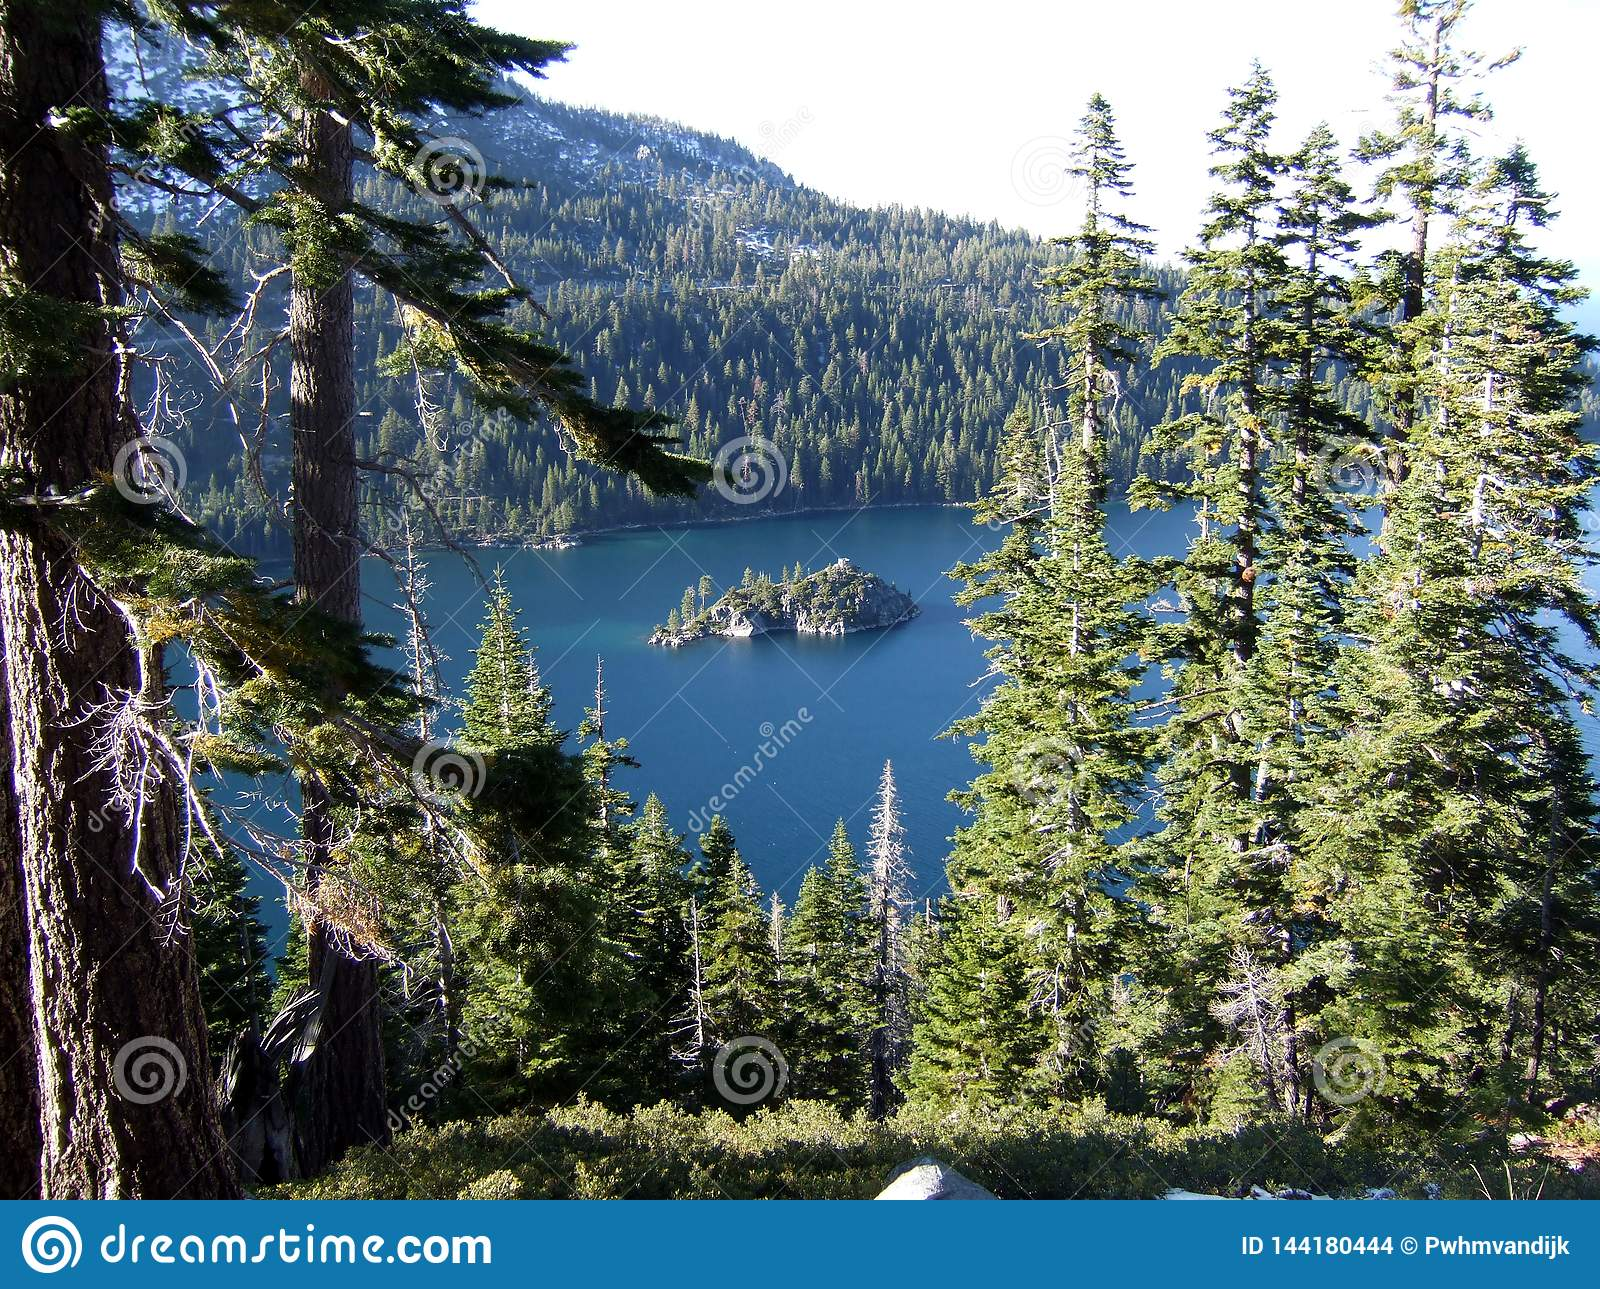 Emerald Bay State Park in South Lake Tahoe & Stateline